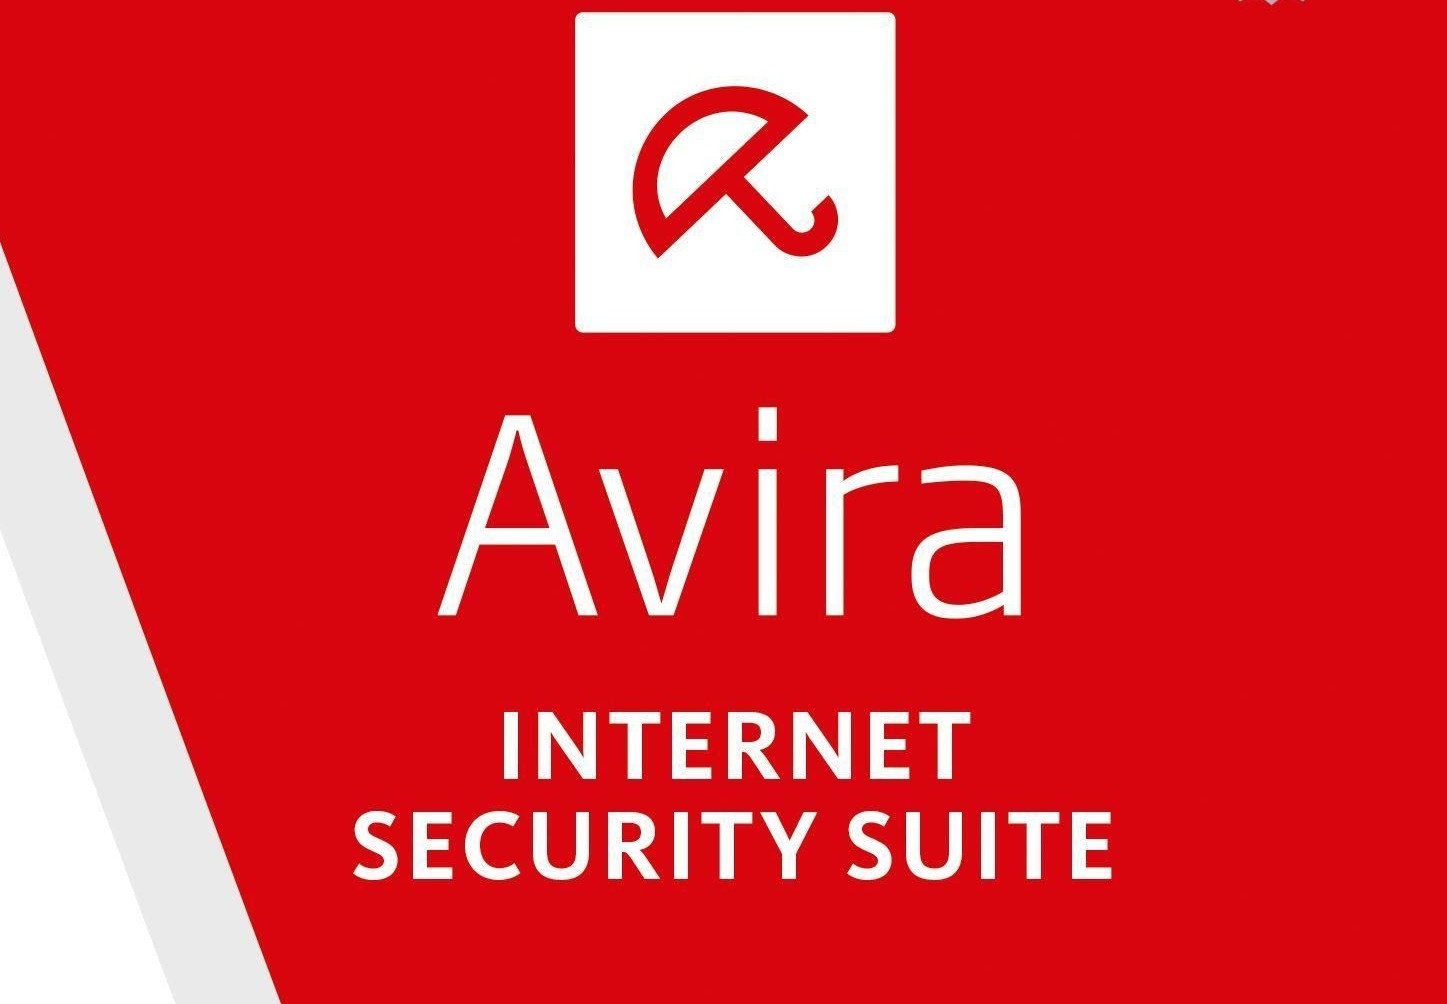 Avira Internet Security Suite 2019 Key (1 Year / 1 Device)